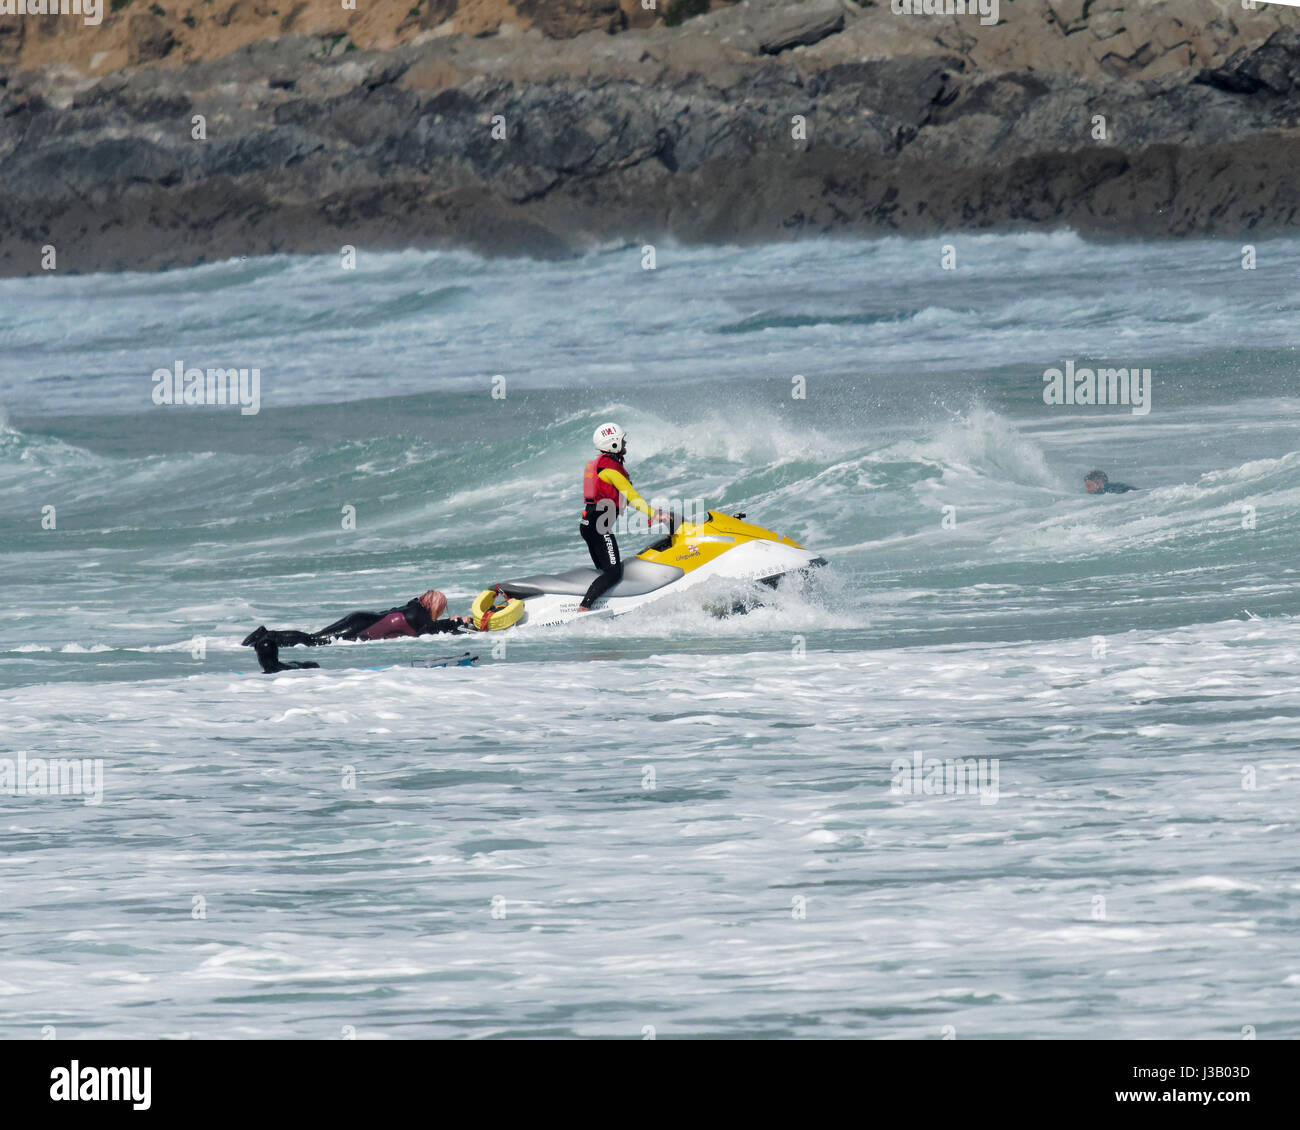 Newquay, UK. 4th May, 2017. Rescue at sea by Lifeguards. 4th, May, 2017. A man and woman on surfboards are rescued - Stock Image